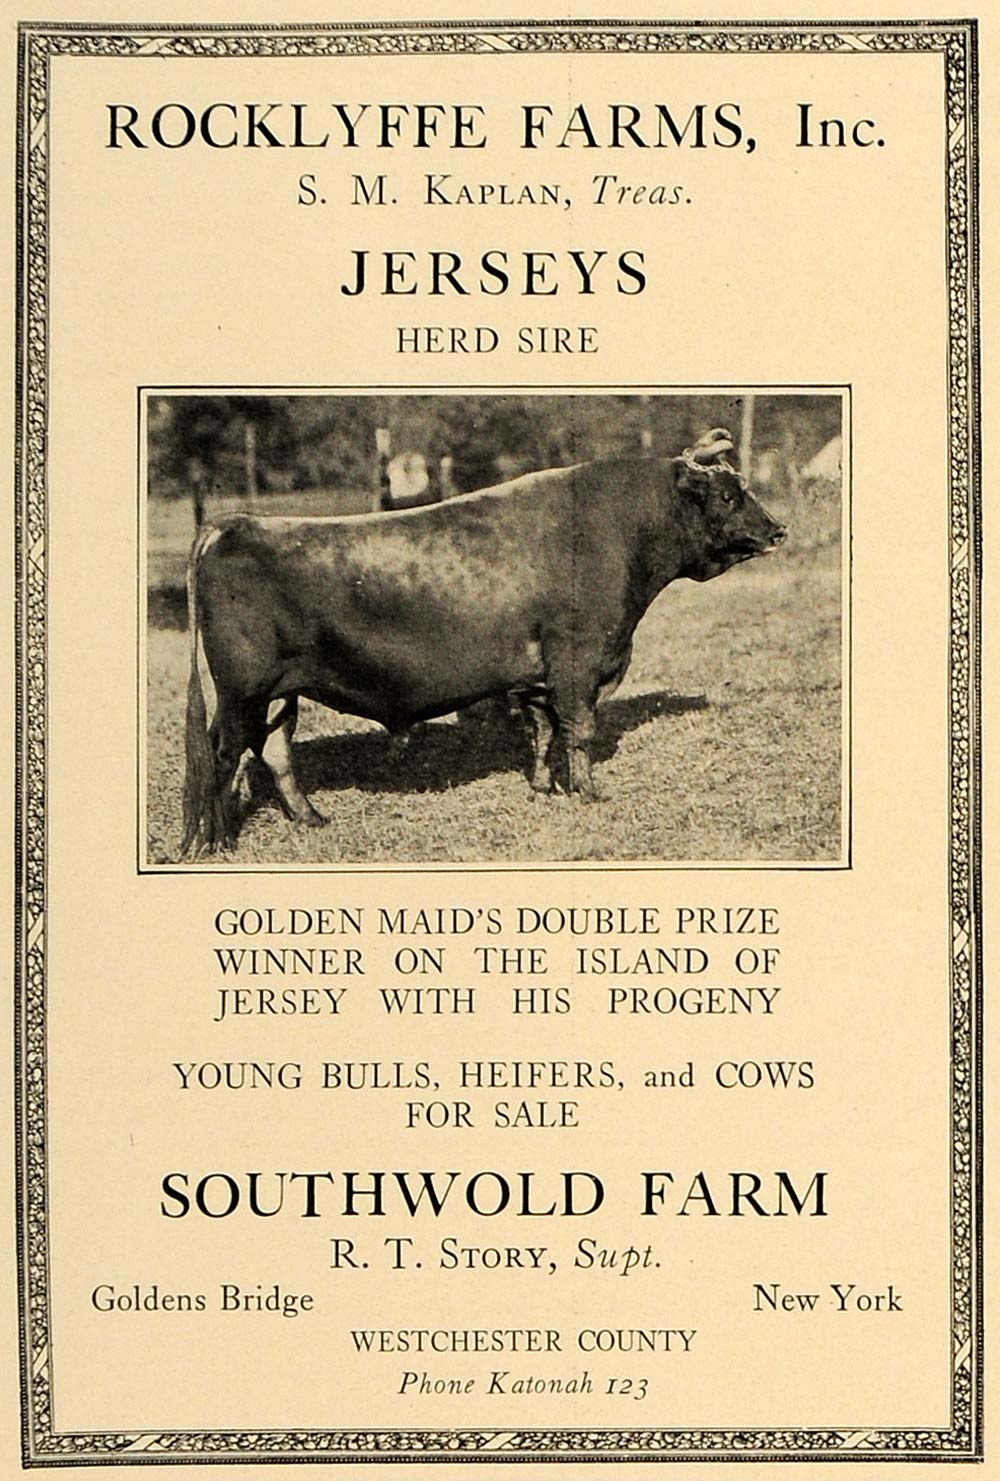 1923 Ad Rocklyffe Southwold Farm Kaplan Jersey Cows - ORIGINAL ADVERTISING CL4